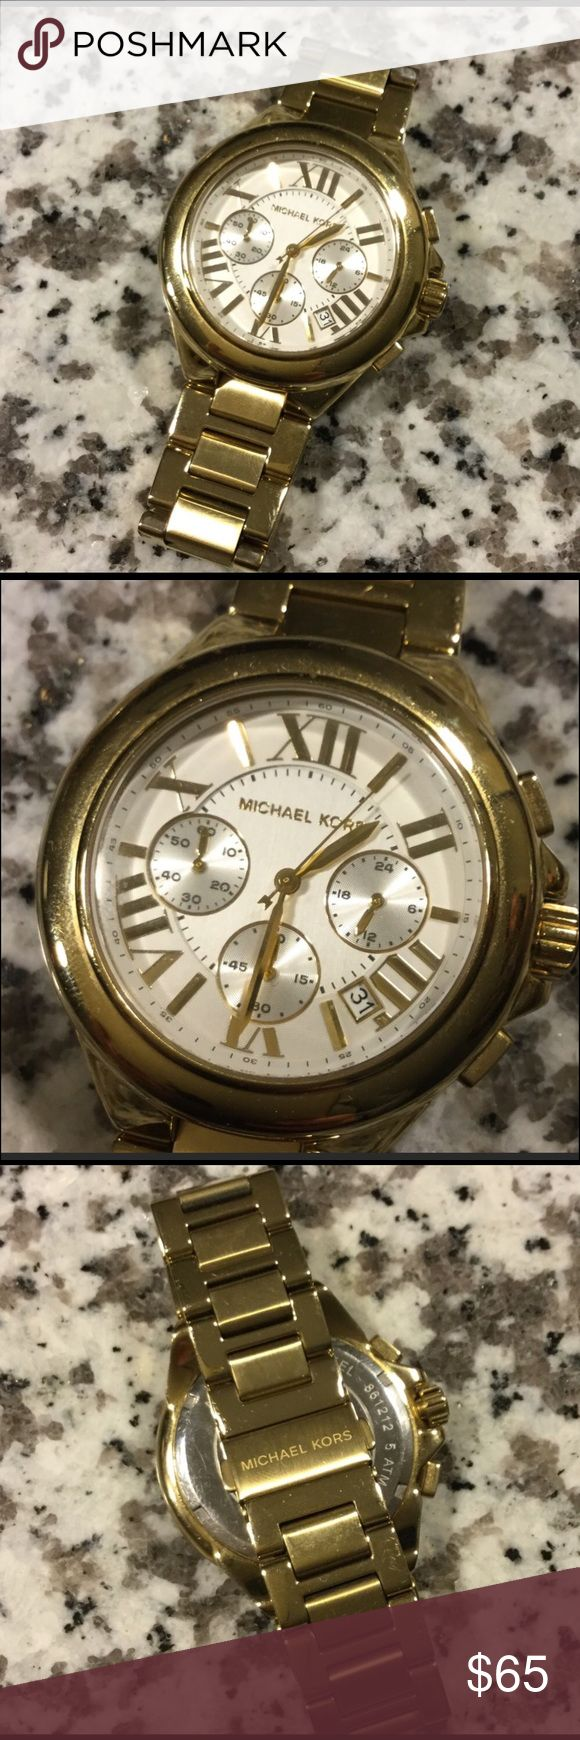 """AUTHENTIC Michael Kors Gold Oversized Watch This watch is a staple piece! Comes as is. 100% authentic. Has 2 links taken out. Fits up to 8"""" wrist. Has minor scratches. Needs a new battery. Overall great condition for the price! MICHAEL Michael Kors Accessories Watches"""